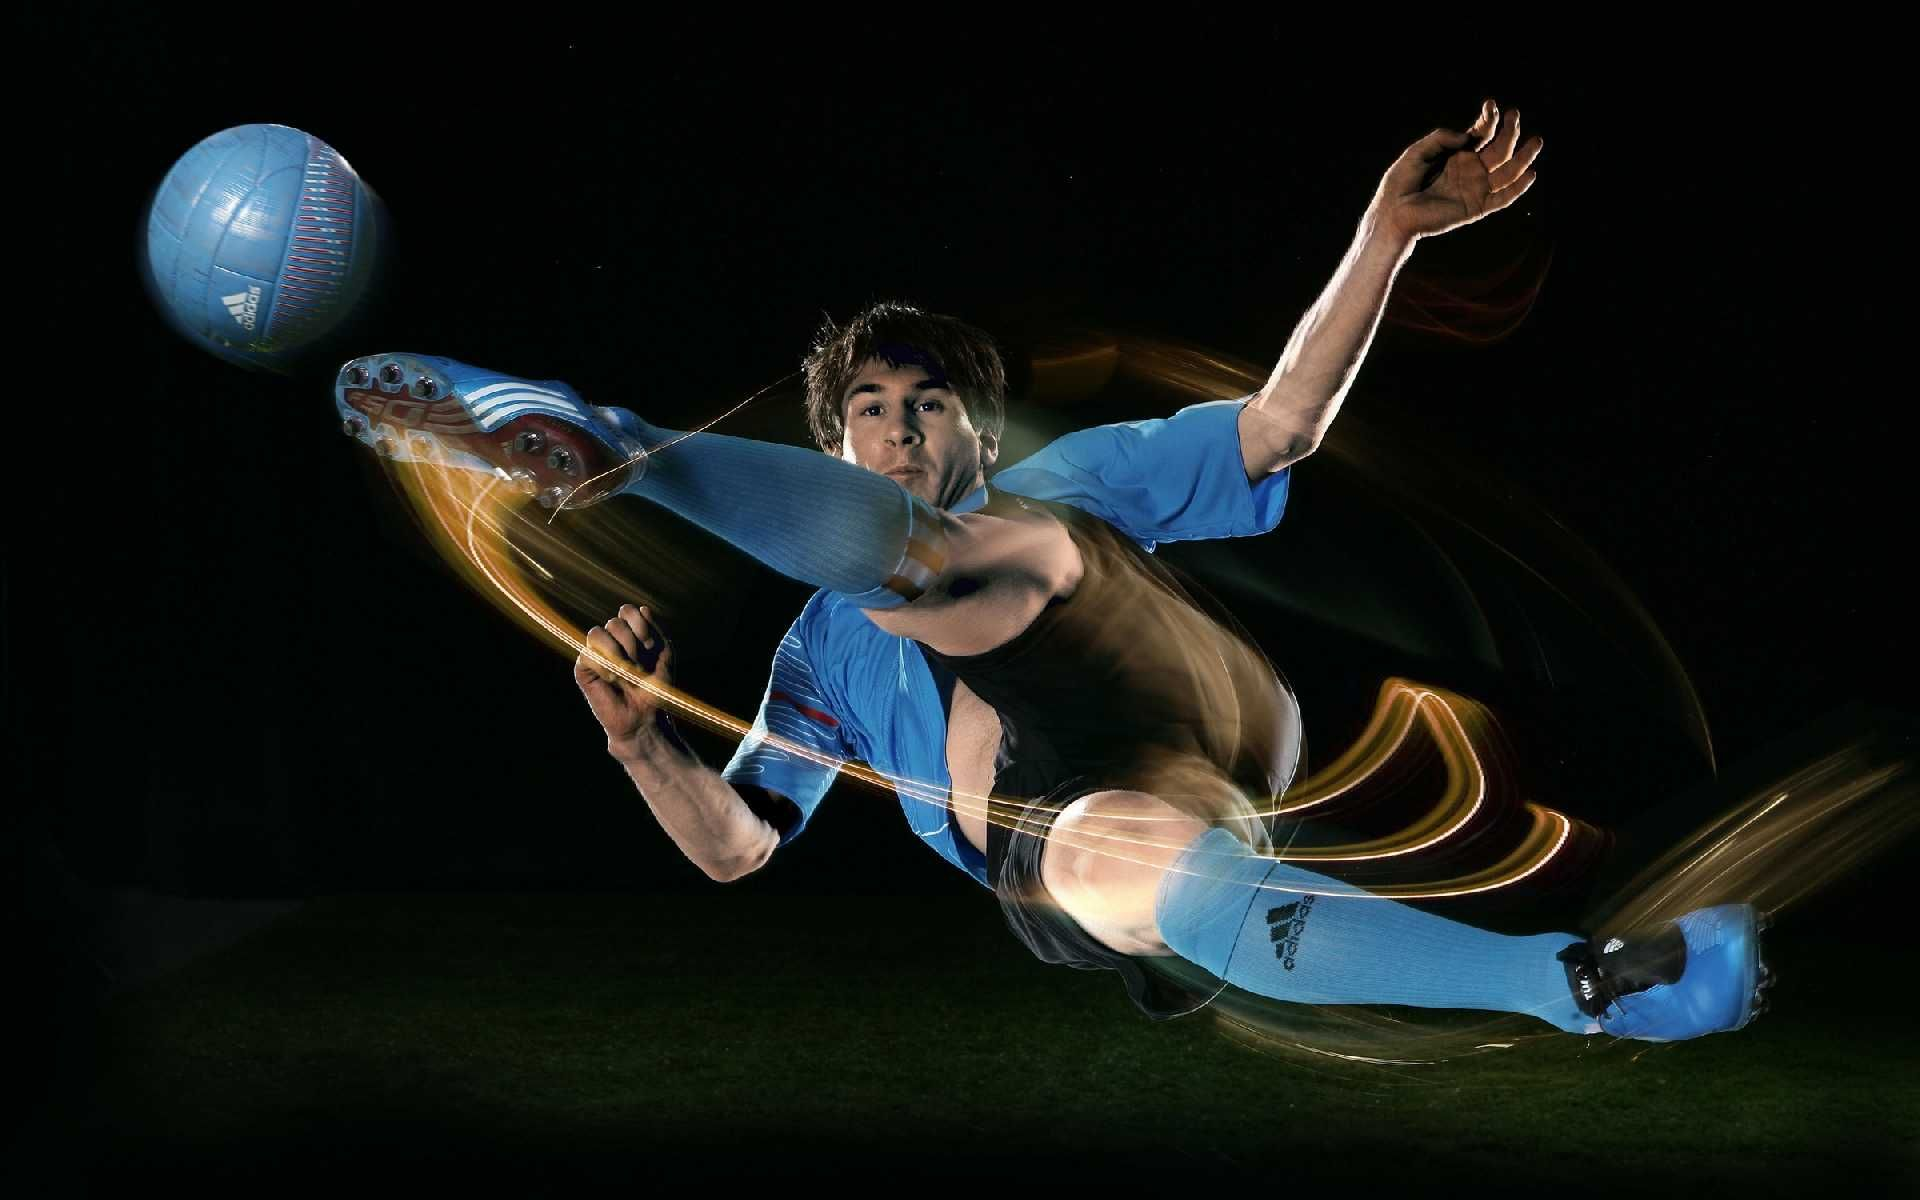 wallpaper.wiki-Messi-Adidas-Soccer-Gear-Flying-Kick-Wallpaper-1920x1200-PIC-WPC0014221